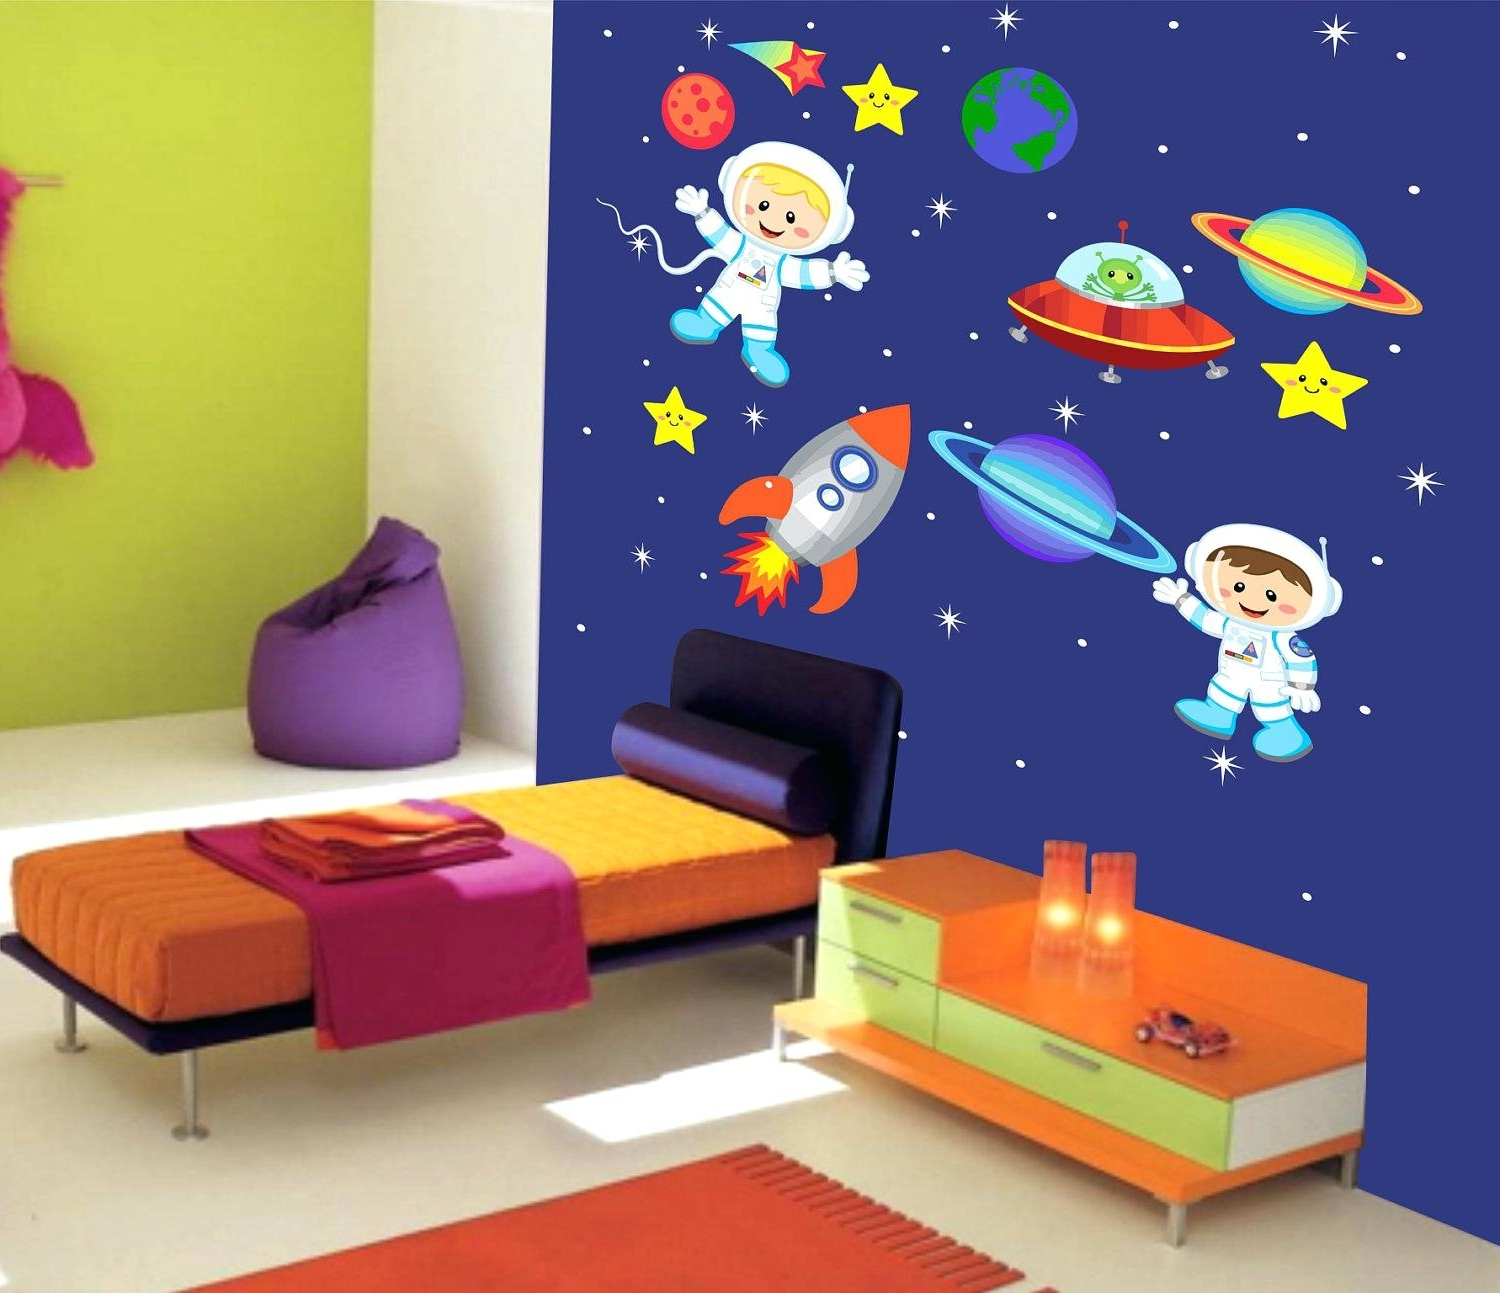 Widely Used Outer Space Wall Art With Regard To Butterfly Wall Decals For Kids Rooms Kids Room Wall Decal Ideas (View 15 of 15)